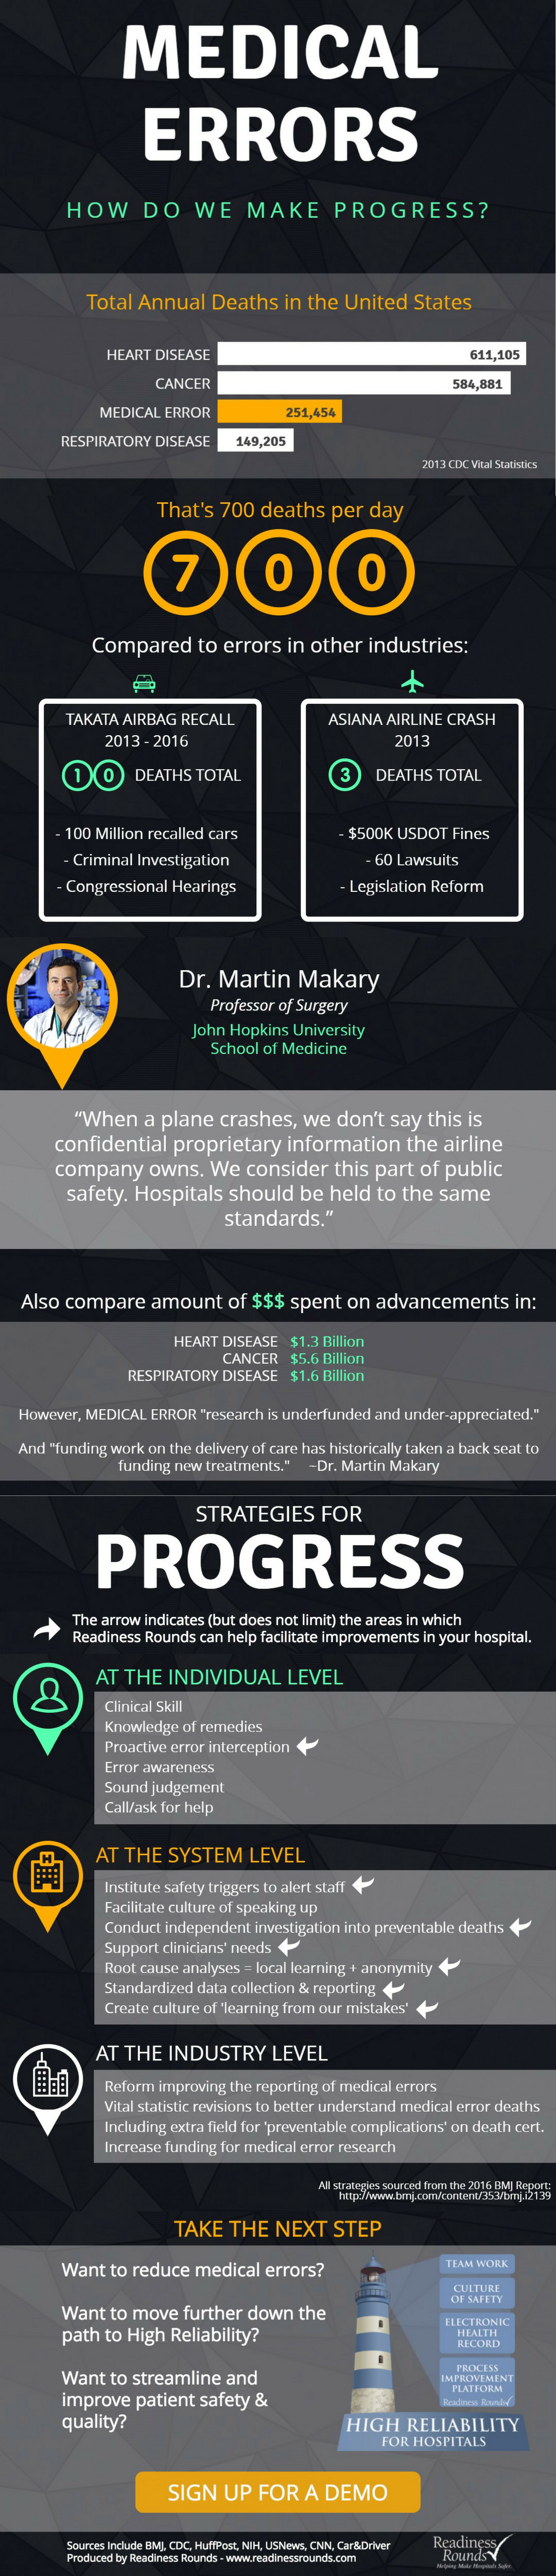 medical error infographic